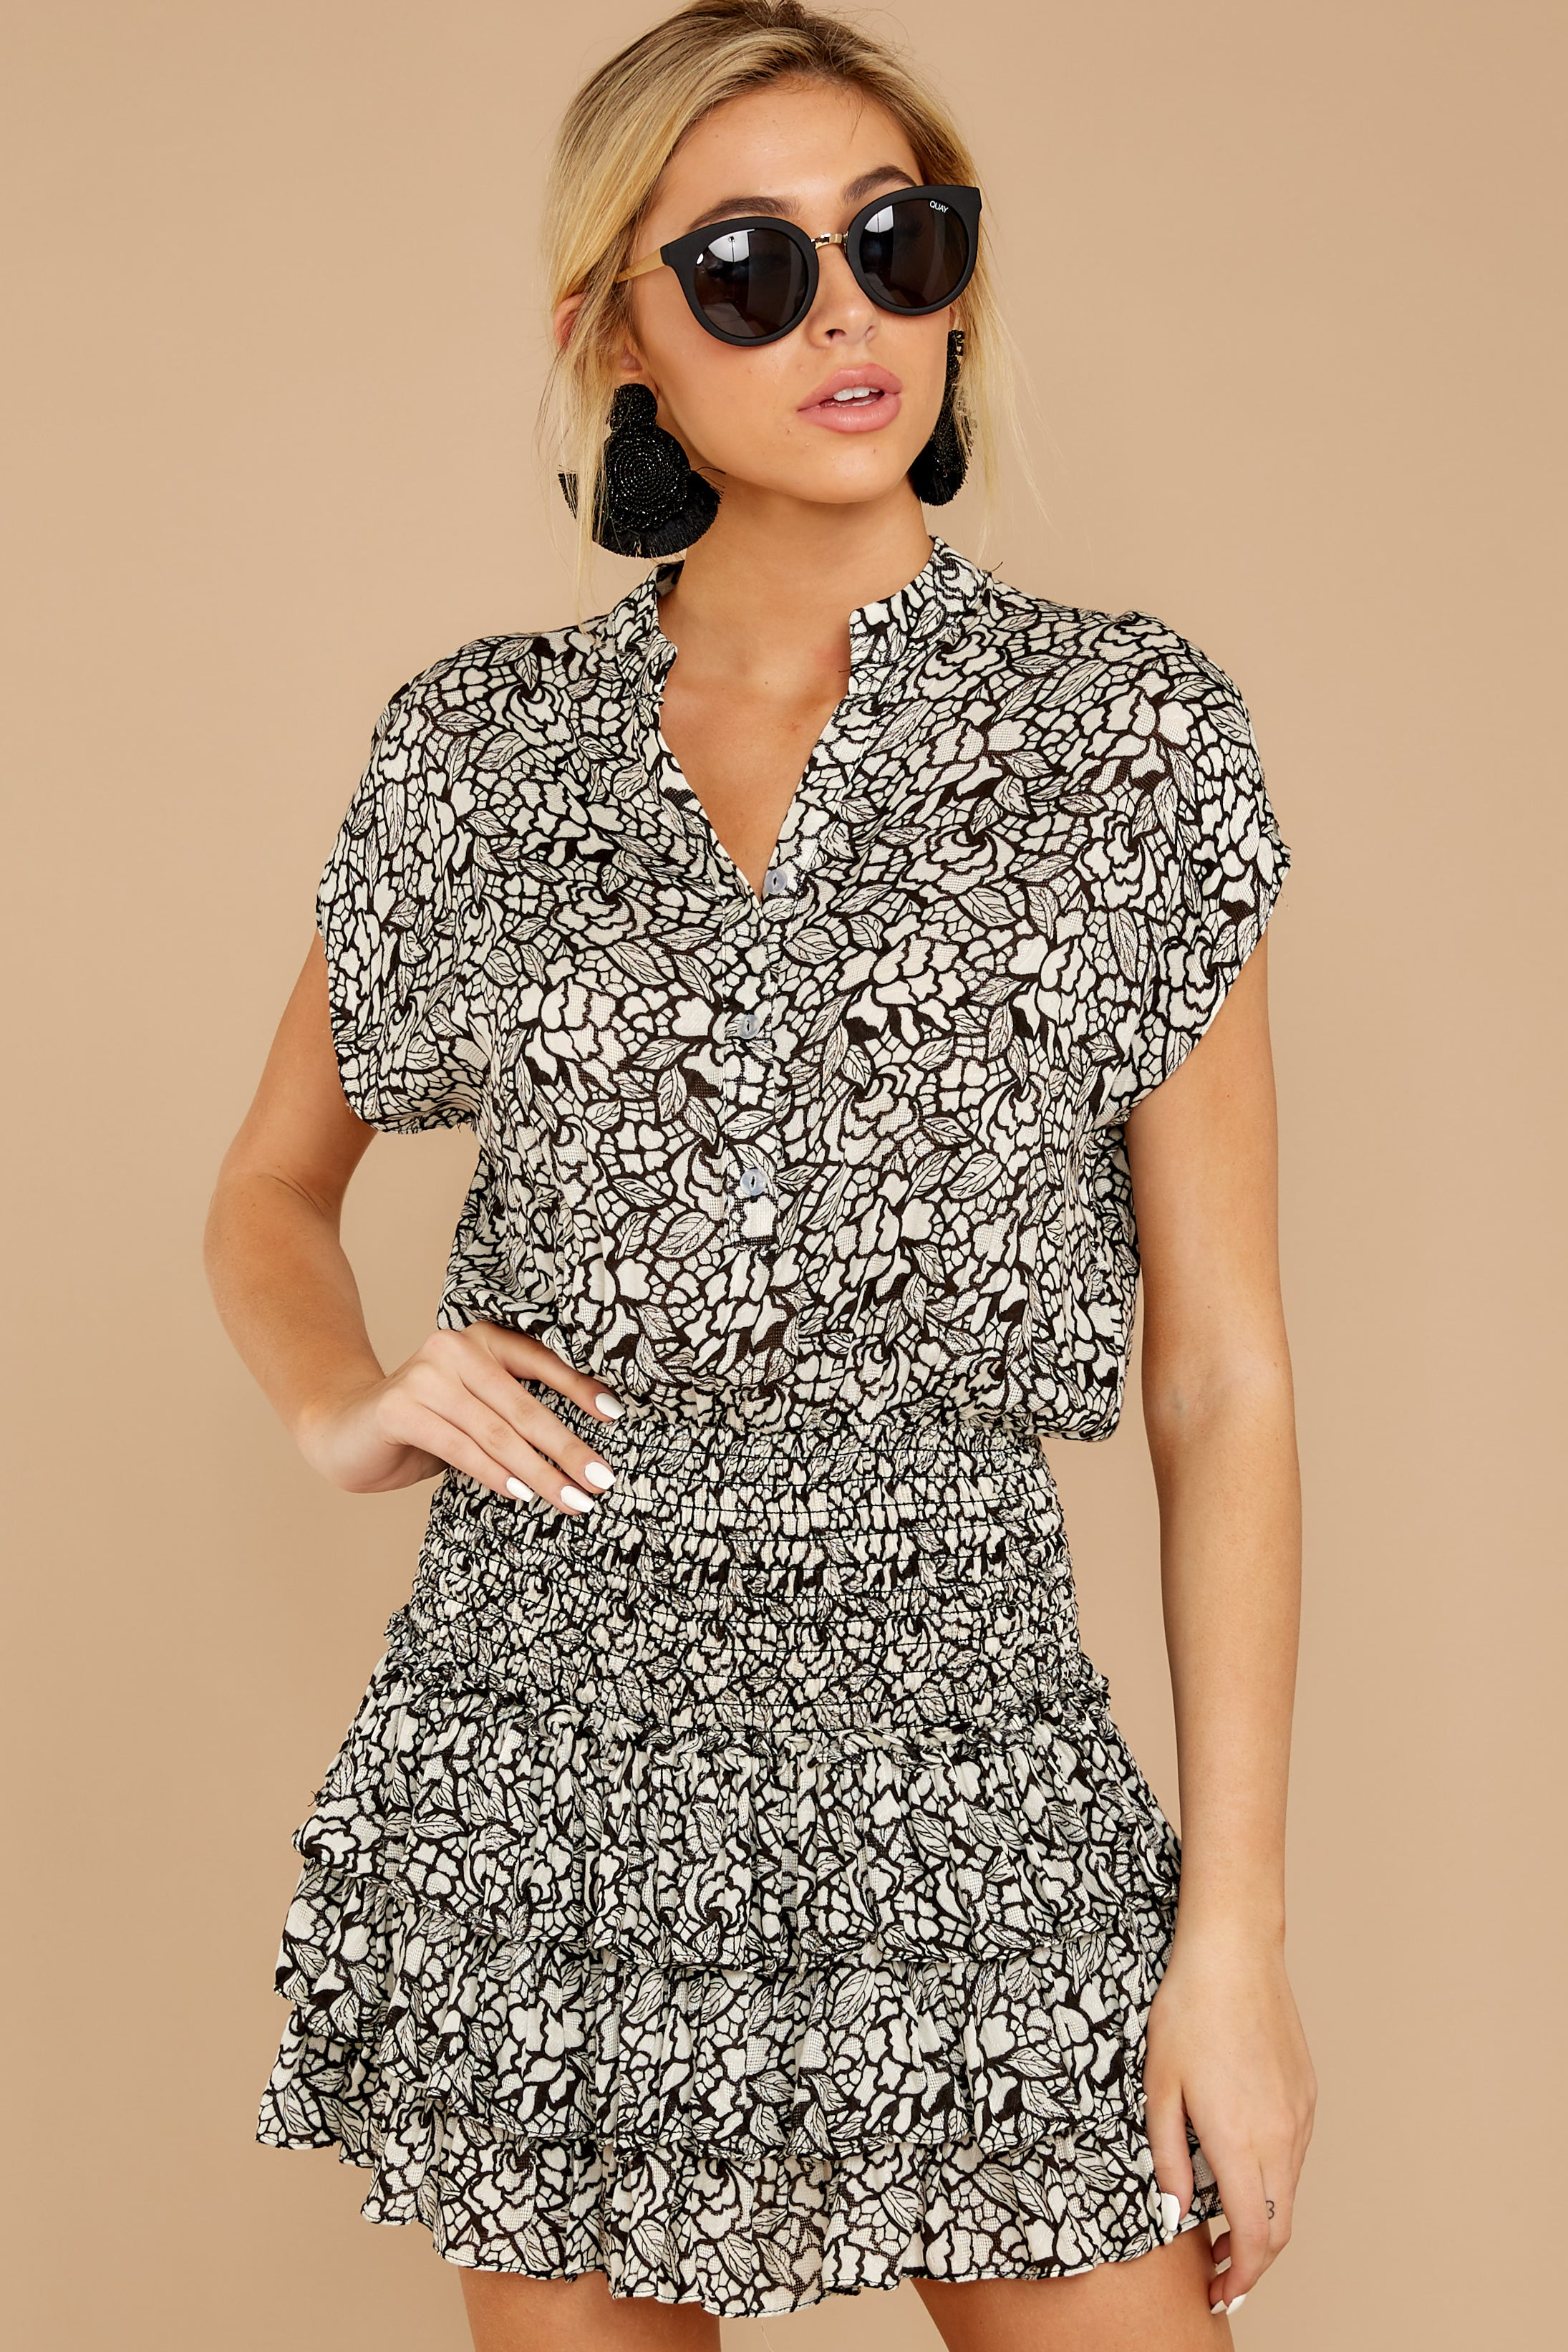 5 Tiers Of Joy Black And White Print Dress at reddressboutique.com